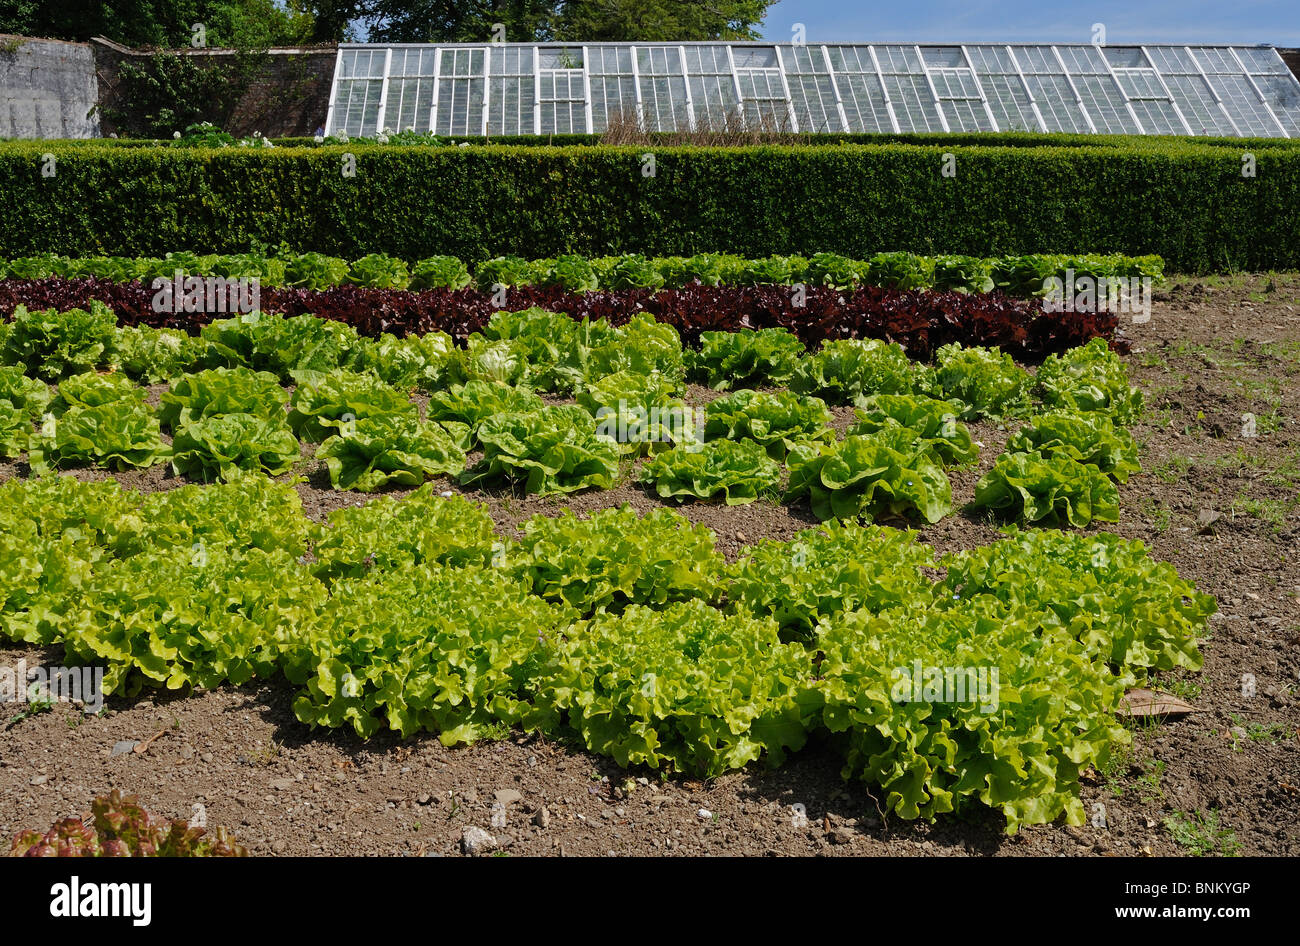 rows of lettuce in the kitchen garden at heligan gardens  in cornwall, uk - Stock Image